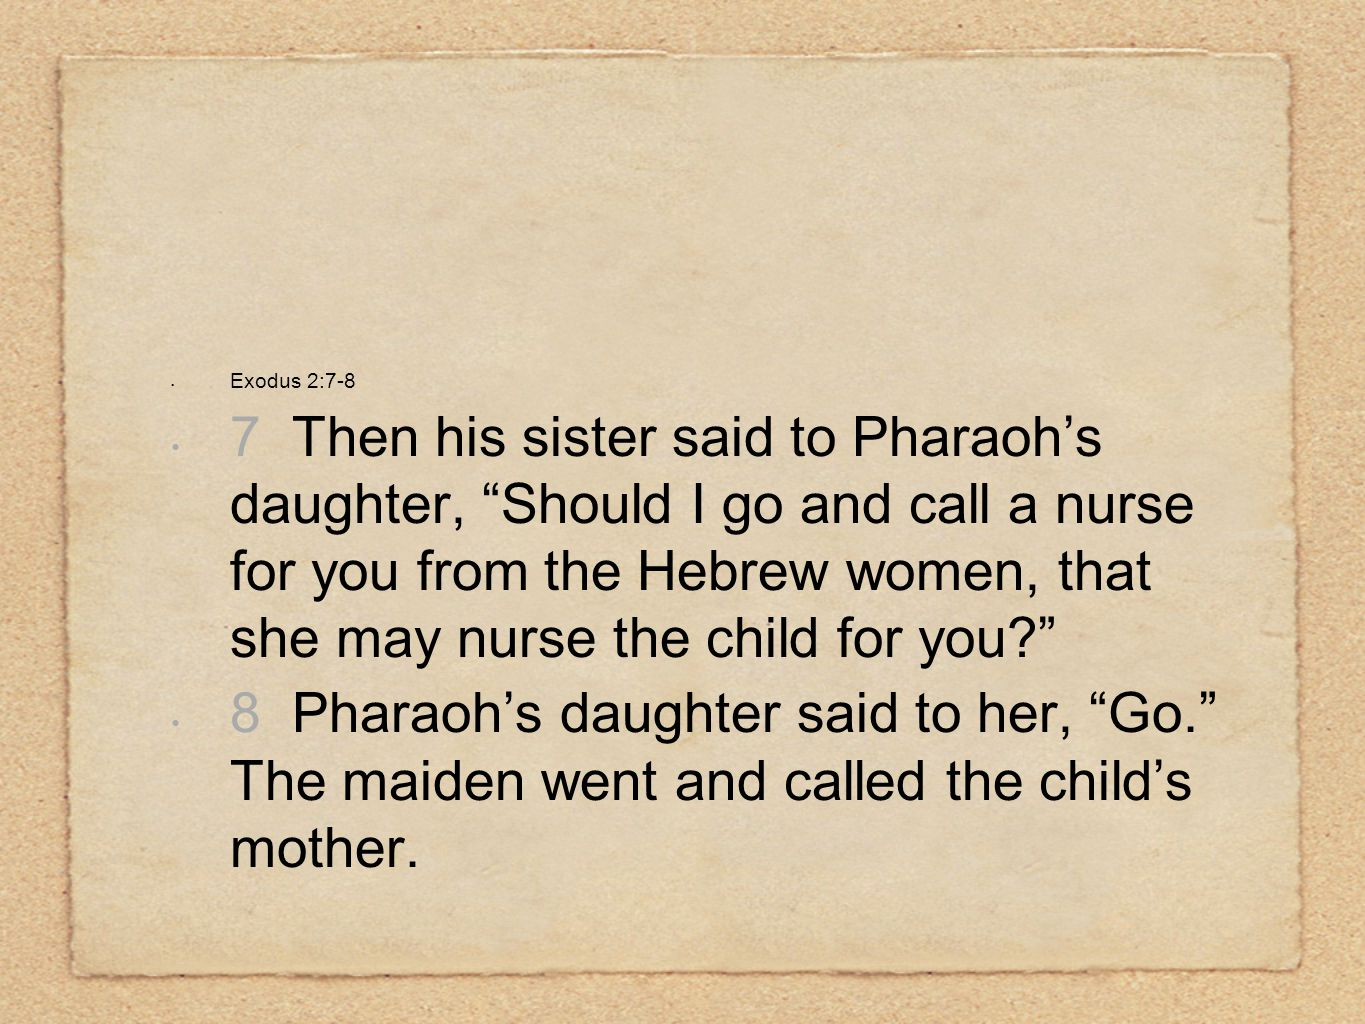 Exodus 2:7-8 7 Then his sister said to Pharaoh's daughter, Should I go and call a nurse for you from the Hebrew women, that she may nurse the child for you 8 Pharaoh's daughter said to her, Go. The maiden went and called the child's mother.